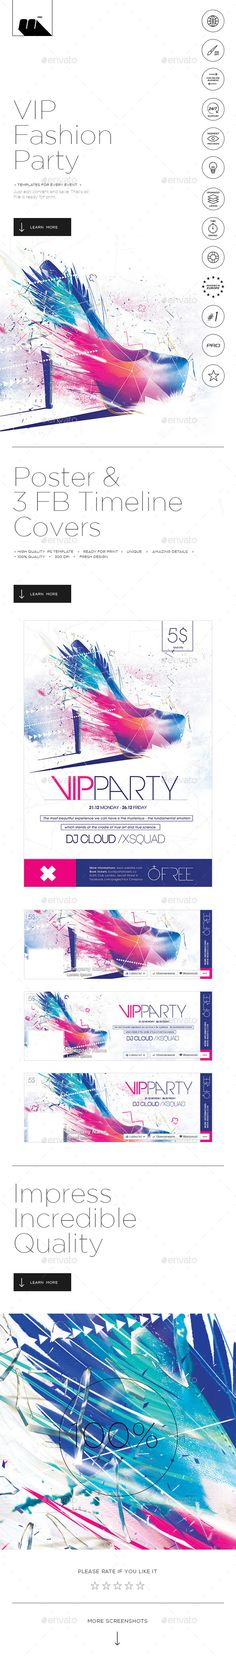 VIP Fashion Party Poster